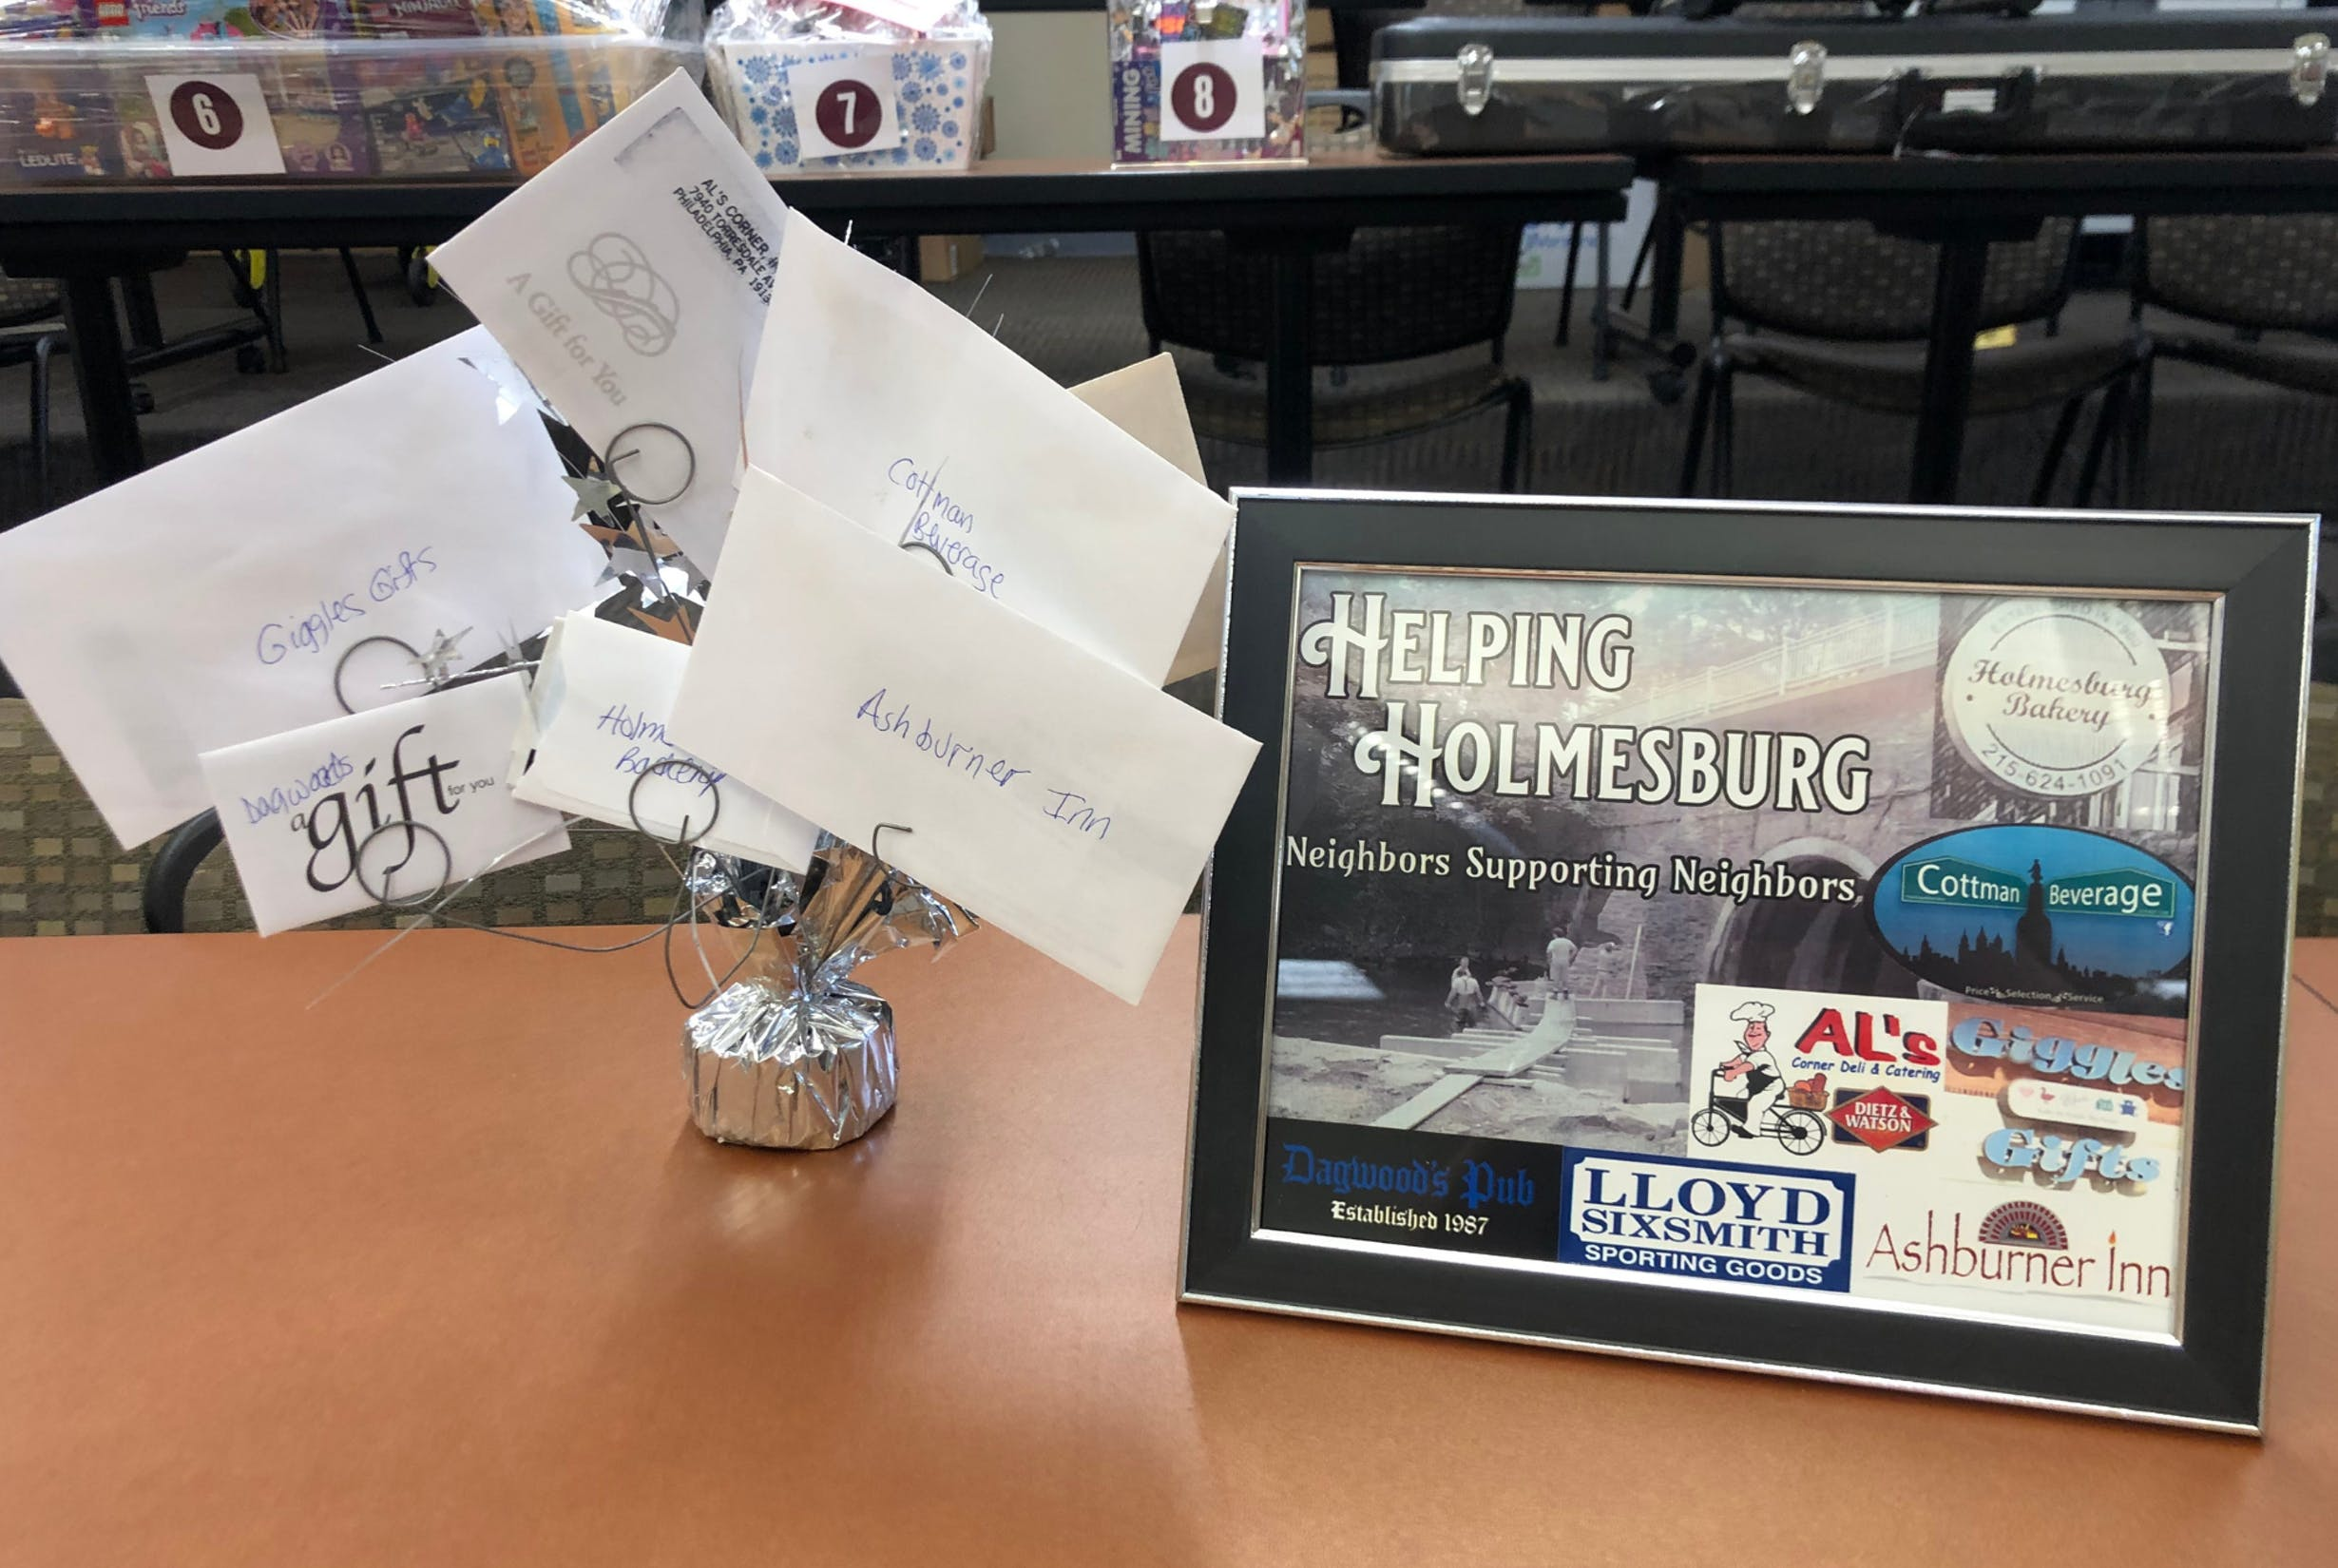 Helping Holmesburg Gift Cards Prize